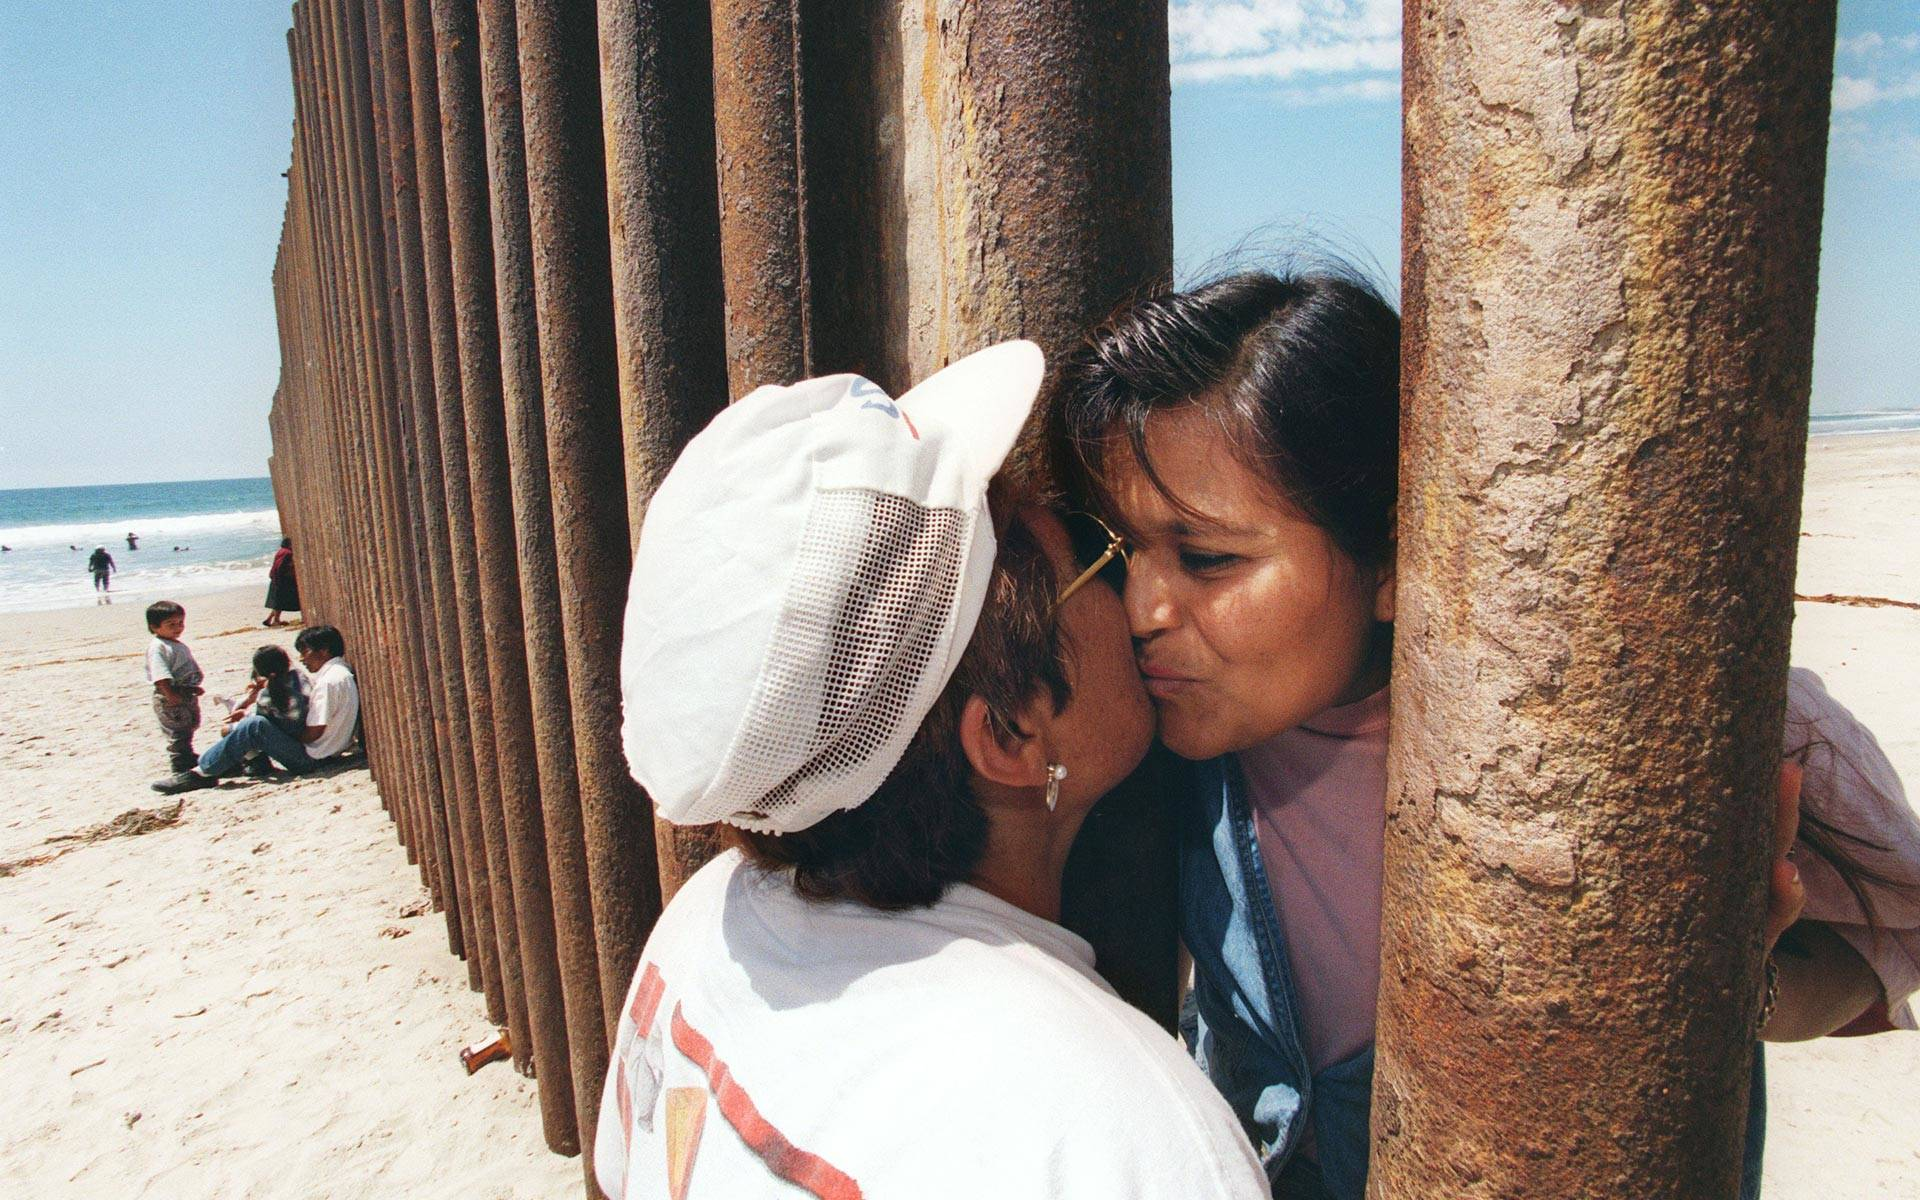 Esther Pereyra Rubalcaba (L) kisses her daughter Patricia through the wall separating the US and the Mexican territories in Tijuana, Mexico, on August 19, 1997. Photo: Hector Mata/AFP/Getty Images